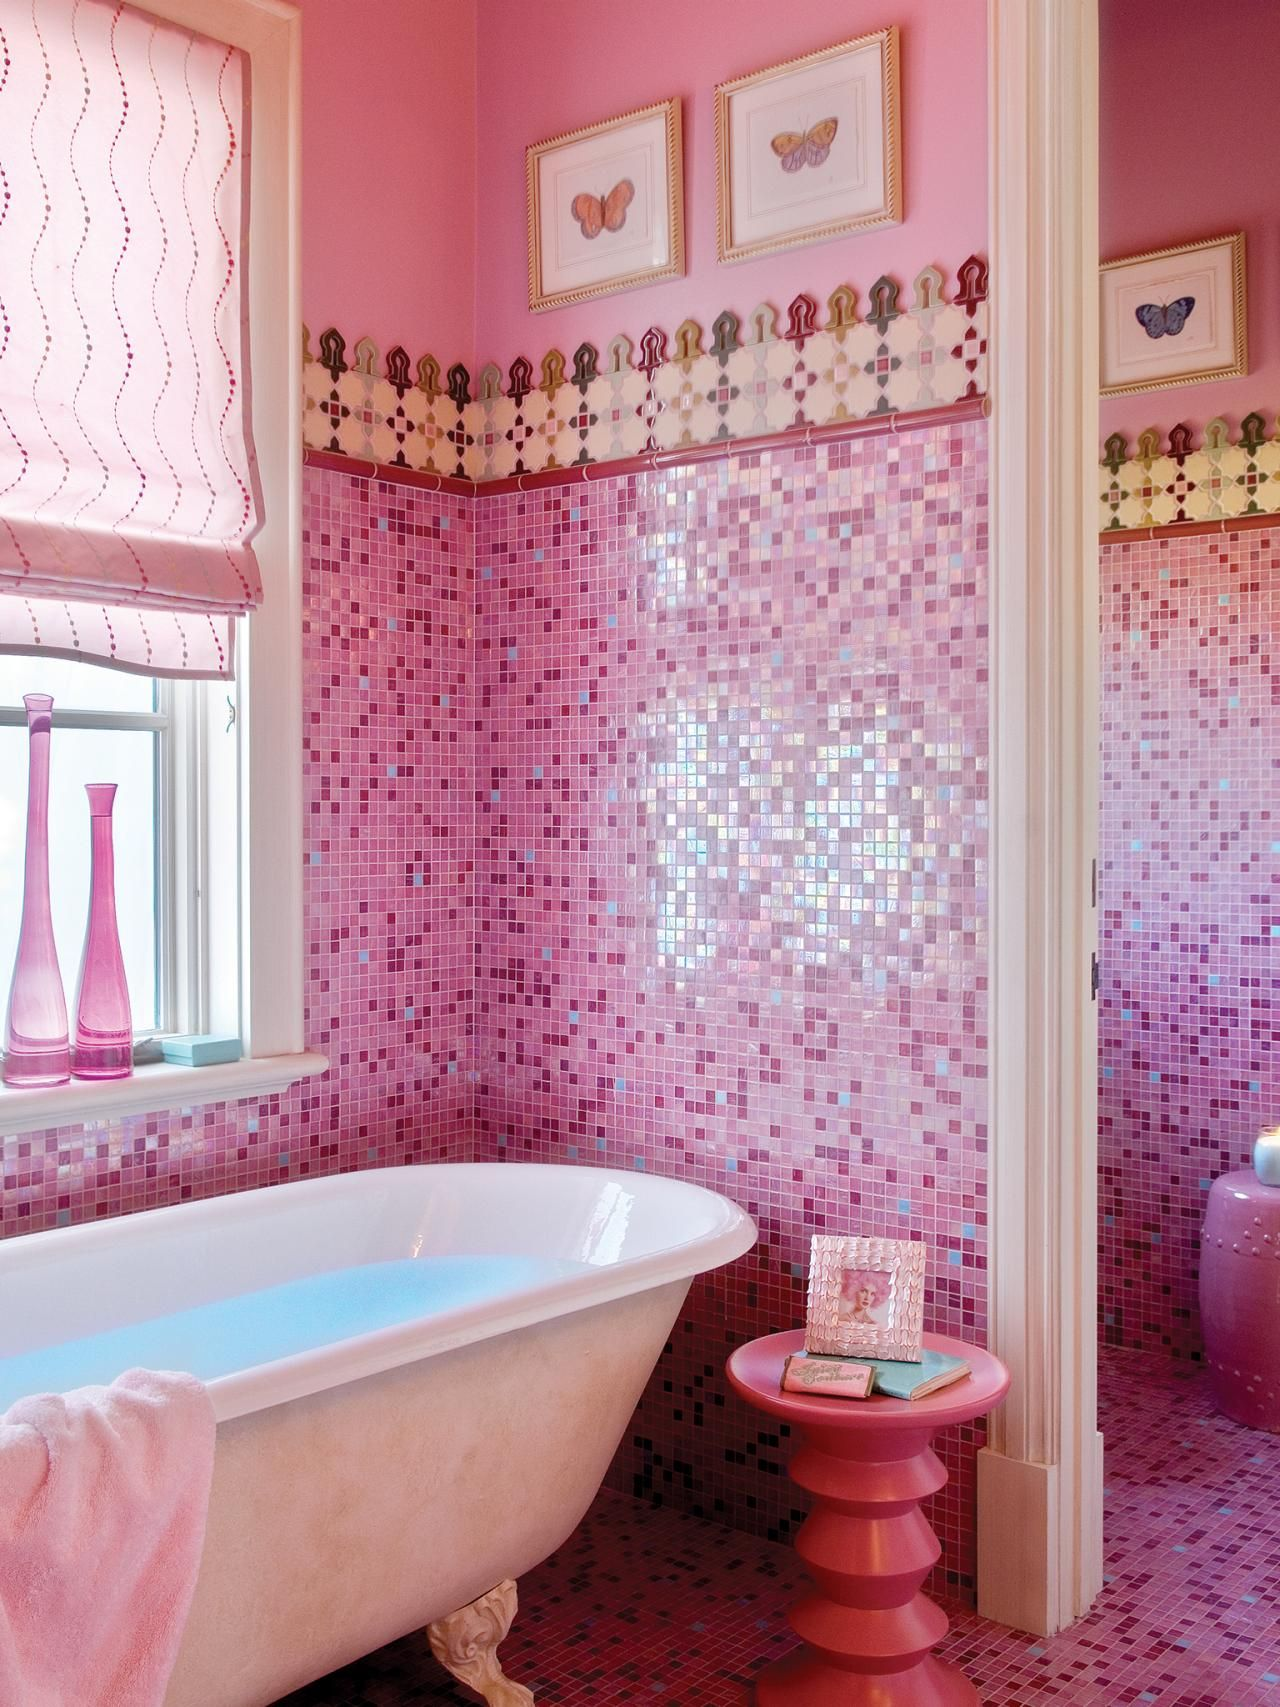 Bathroom Tiles For Every Budget And Design Style Pink Pink Pink - Teen bathroom sets for small bathroom ideas